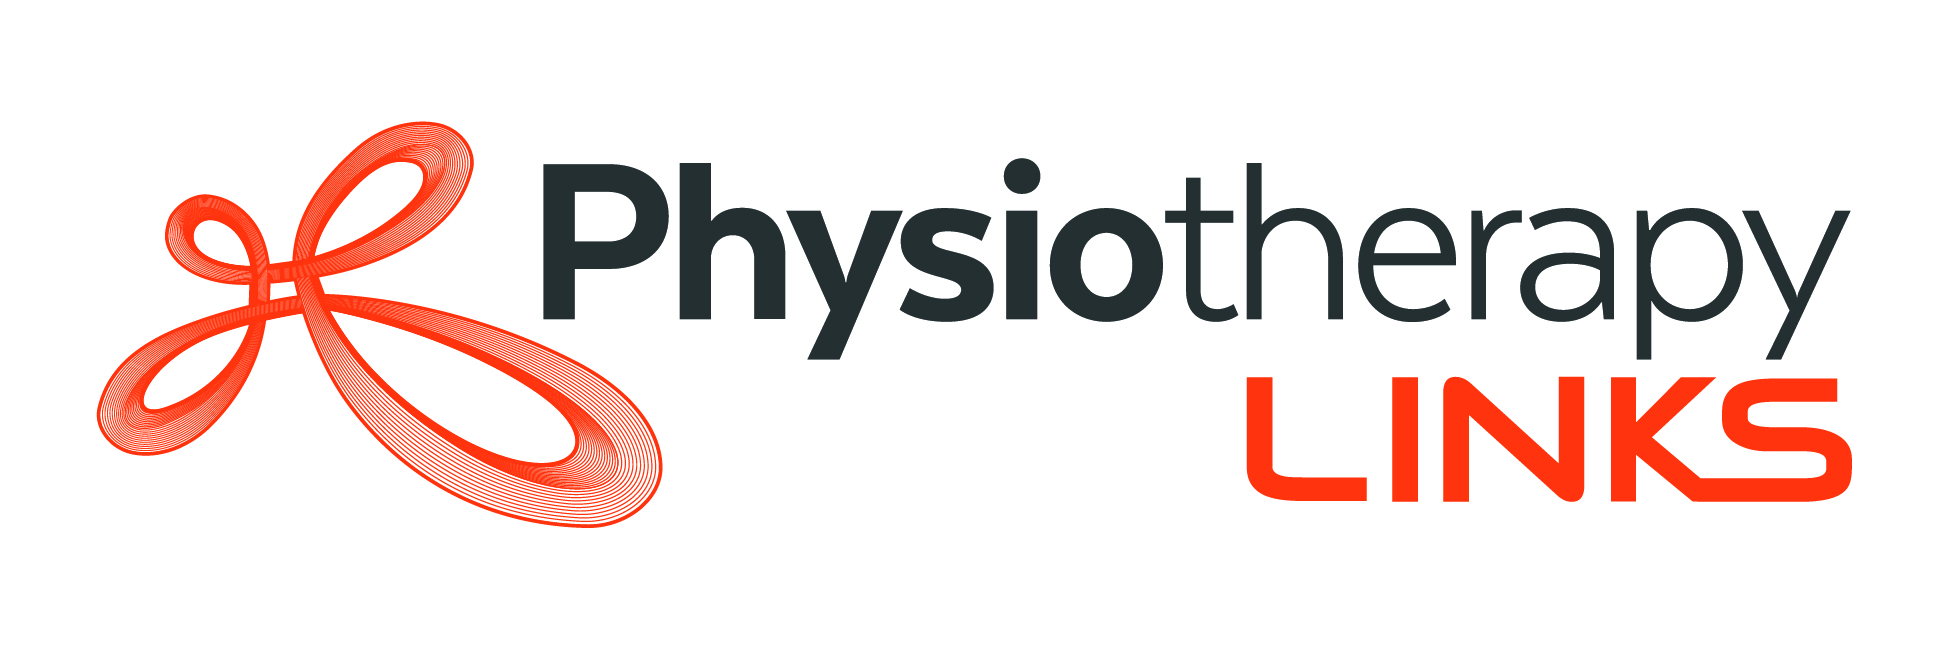 PhysiotherapyLinks_Logo-01.jpg